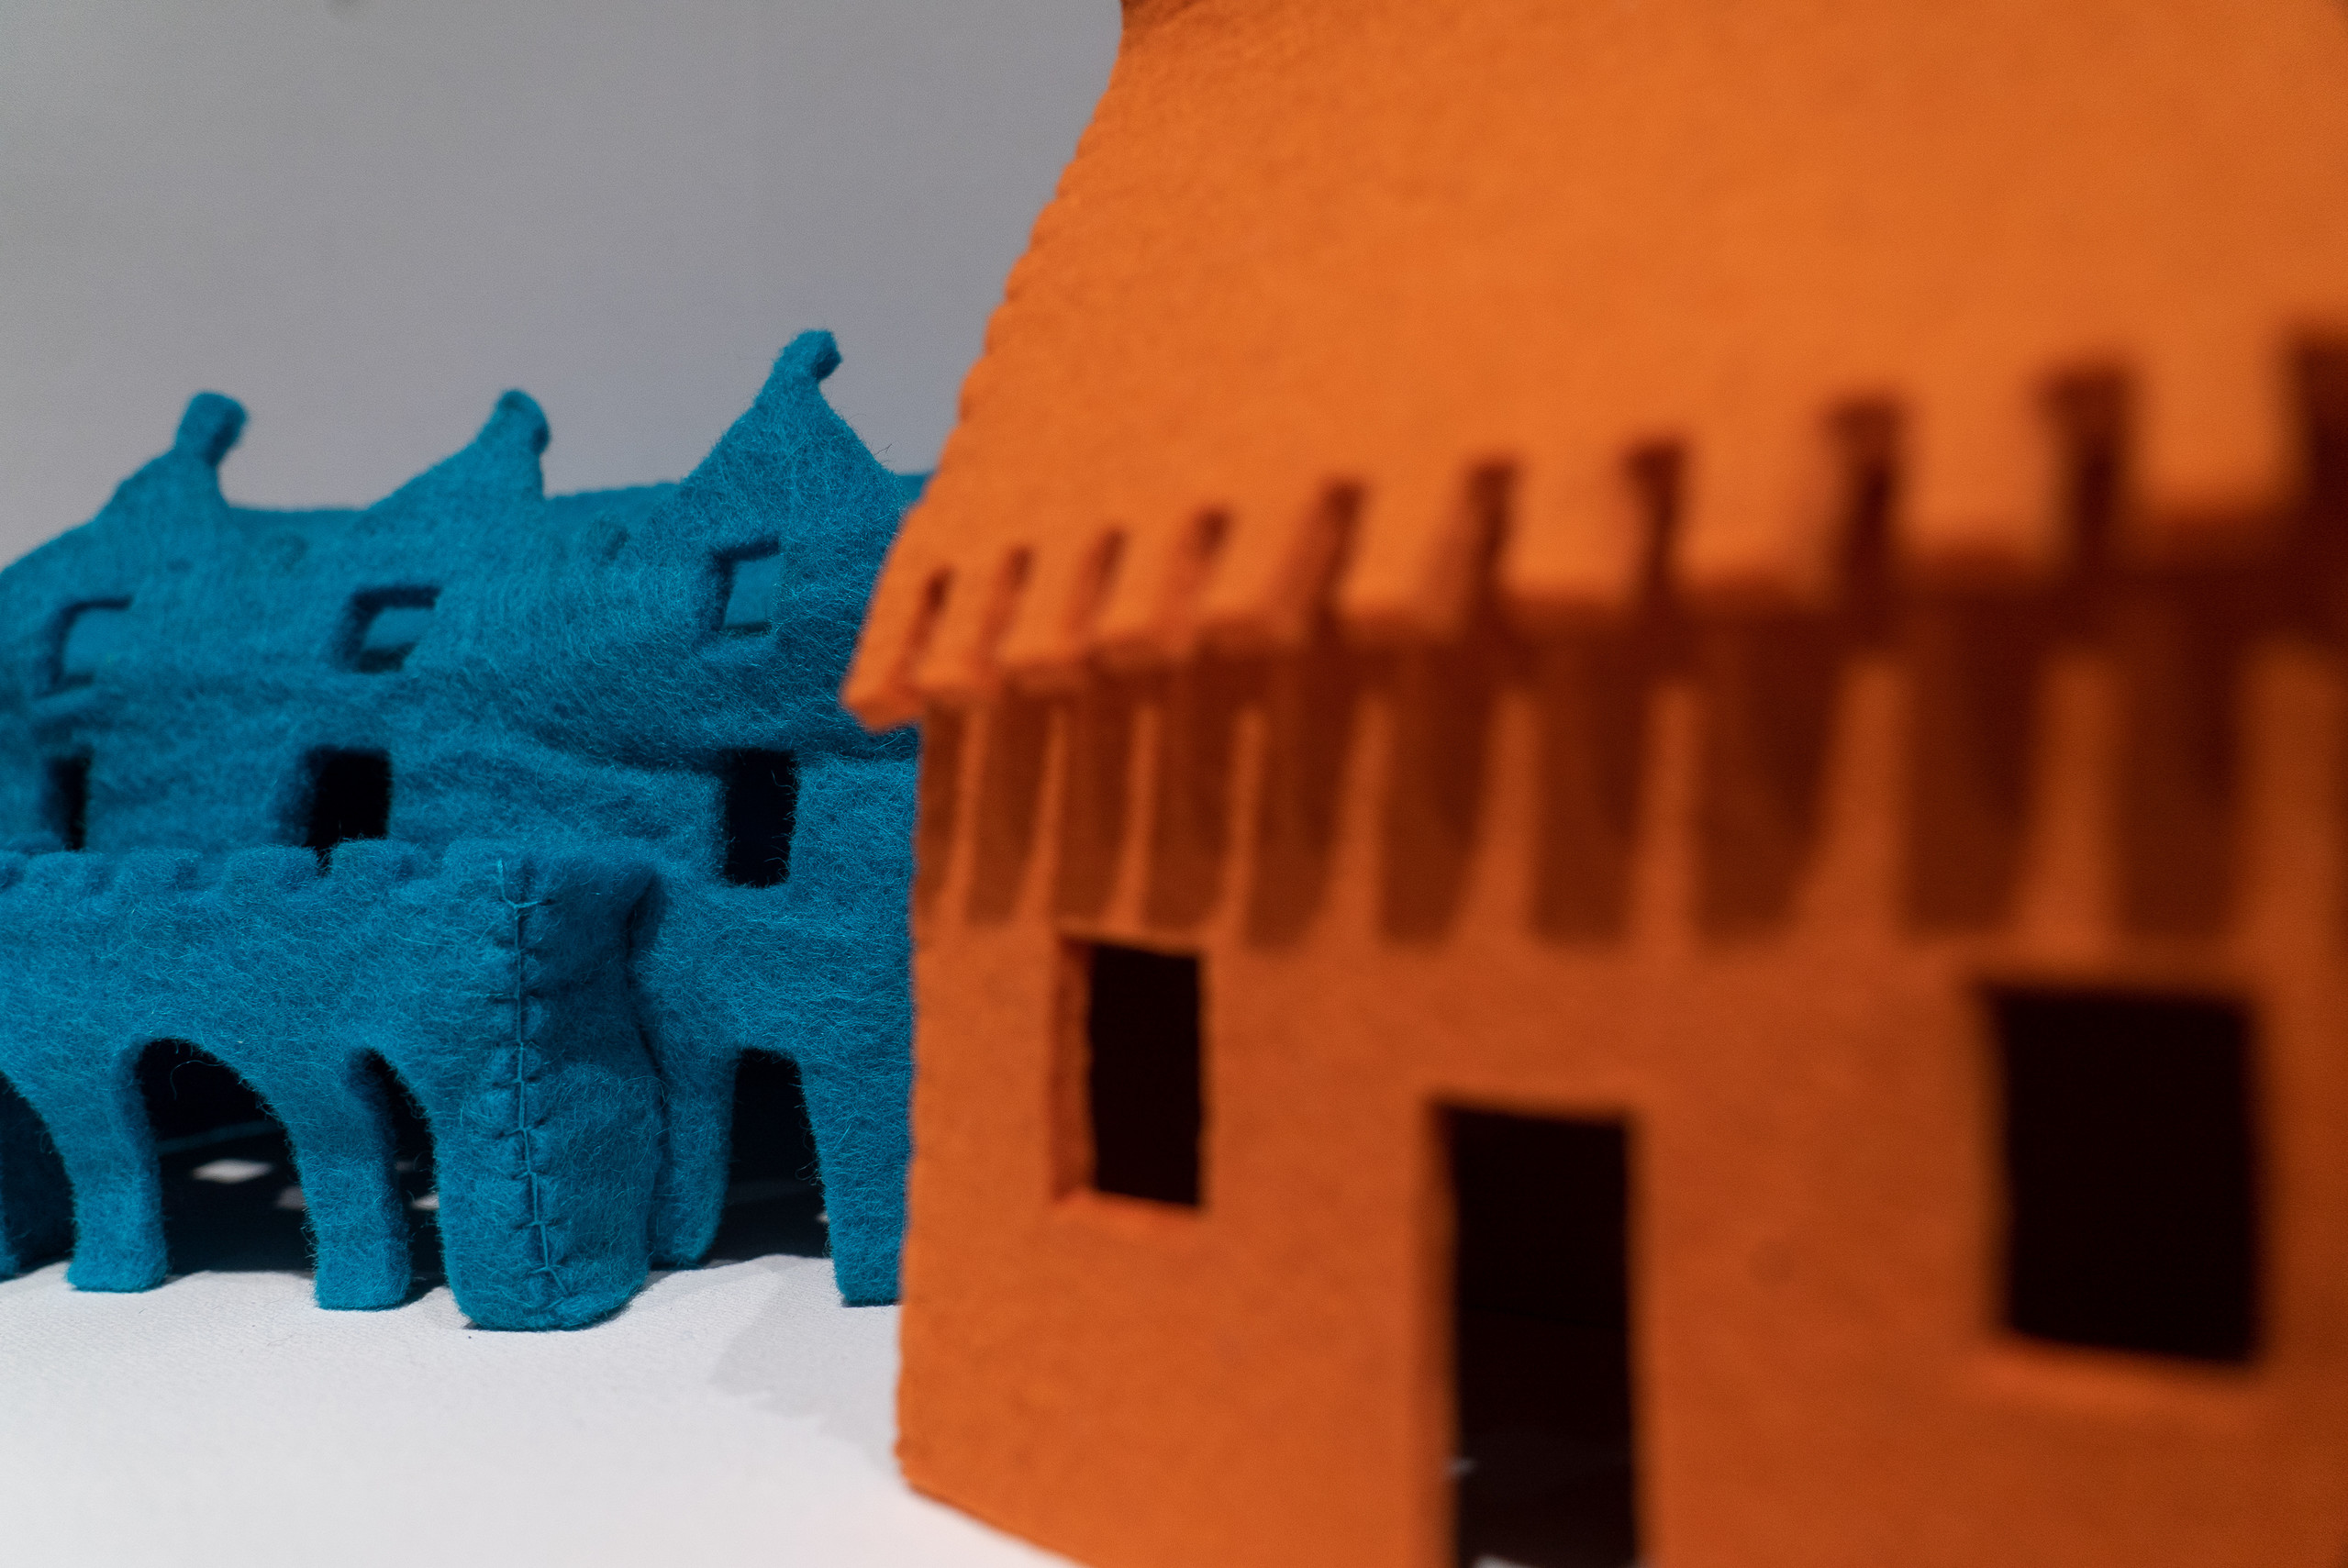 Close-up detail of a larger artwork features a view of two felt houses. On the viewer's right is an orange house that is out-of-focus while on the left is a blue house that is in-focus and has visible stitches, coarse texture, and rectangular windows.